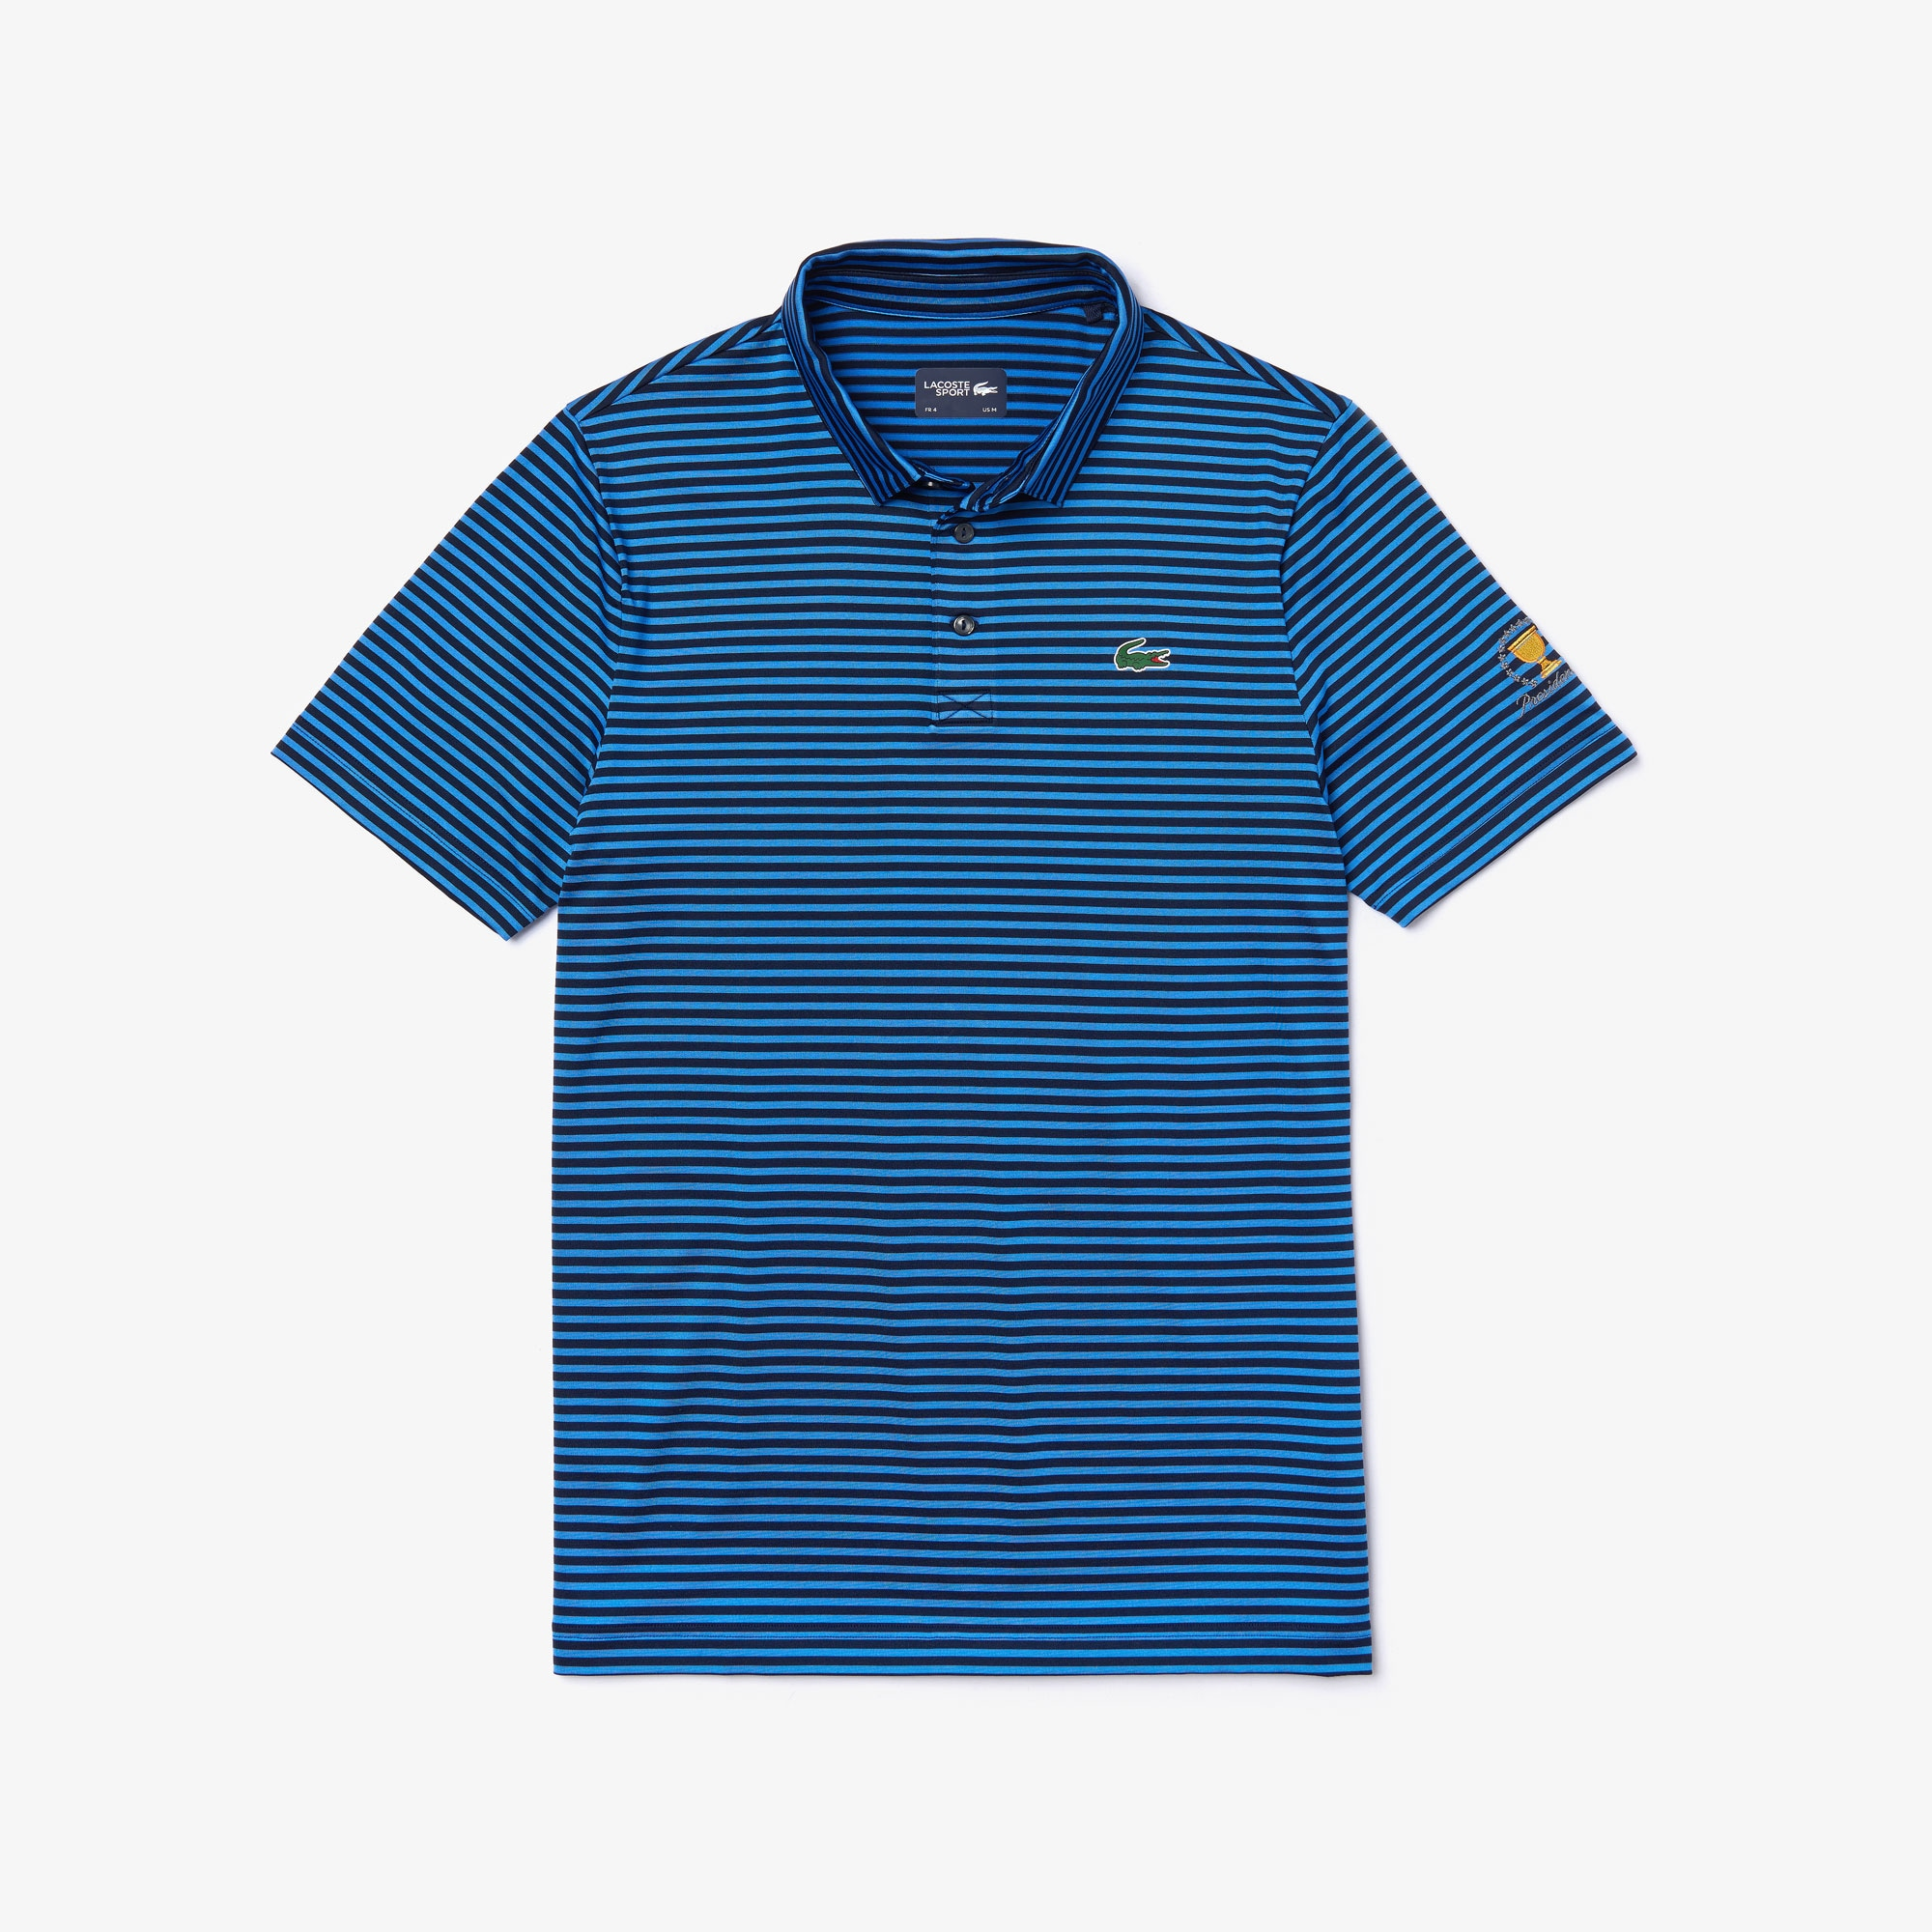 Lacoste Tops Men's Presidents Cup Pinstriped Breathable Jersey Golf Polo